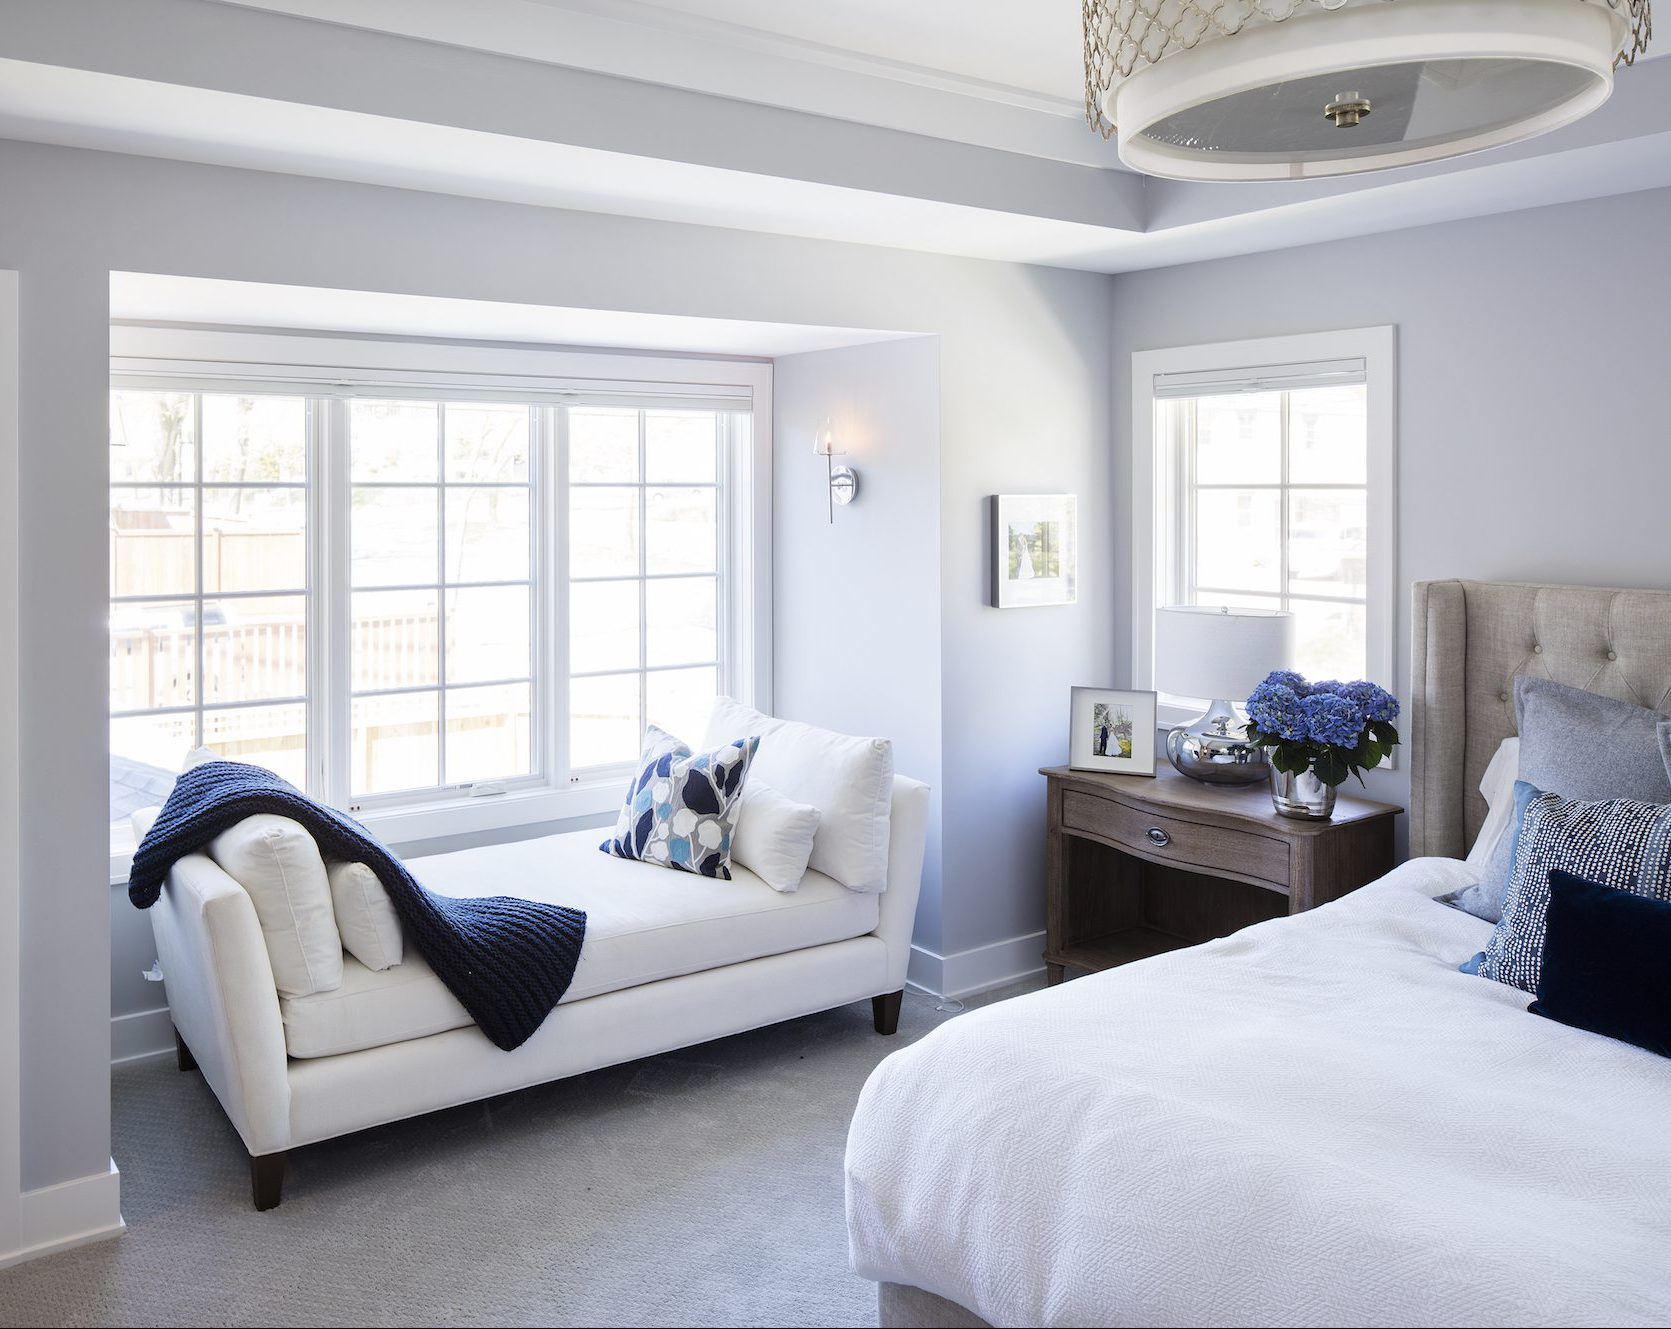 The master suite features unique ceiling detail and a cozy reading nook.